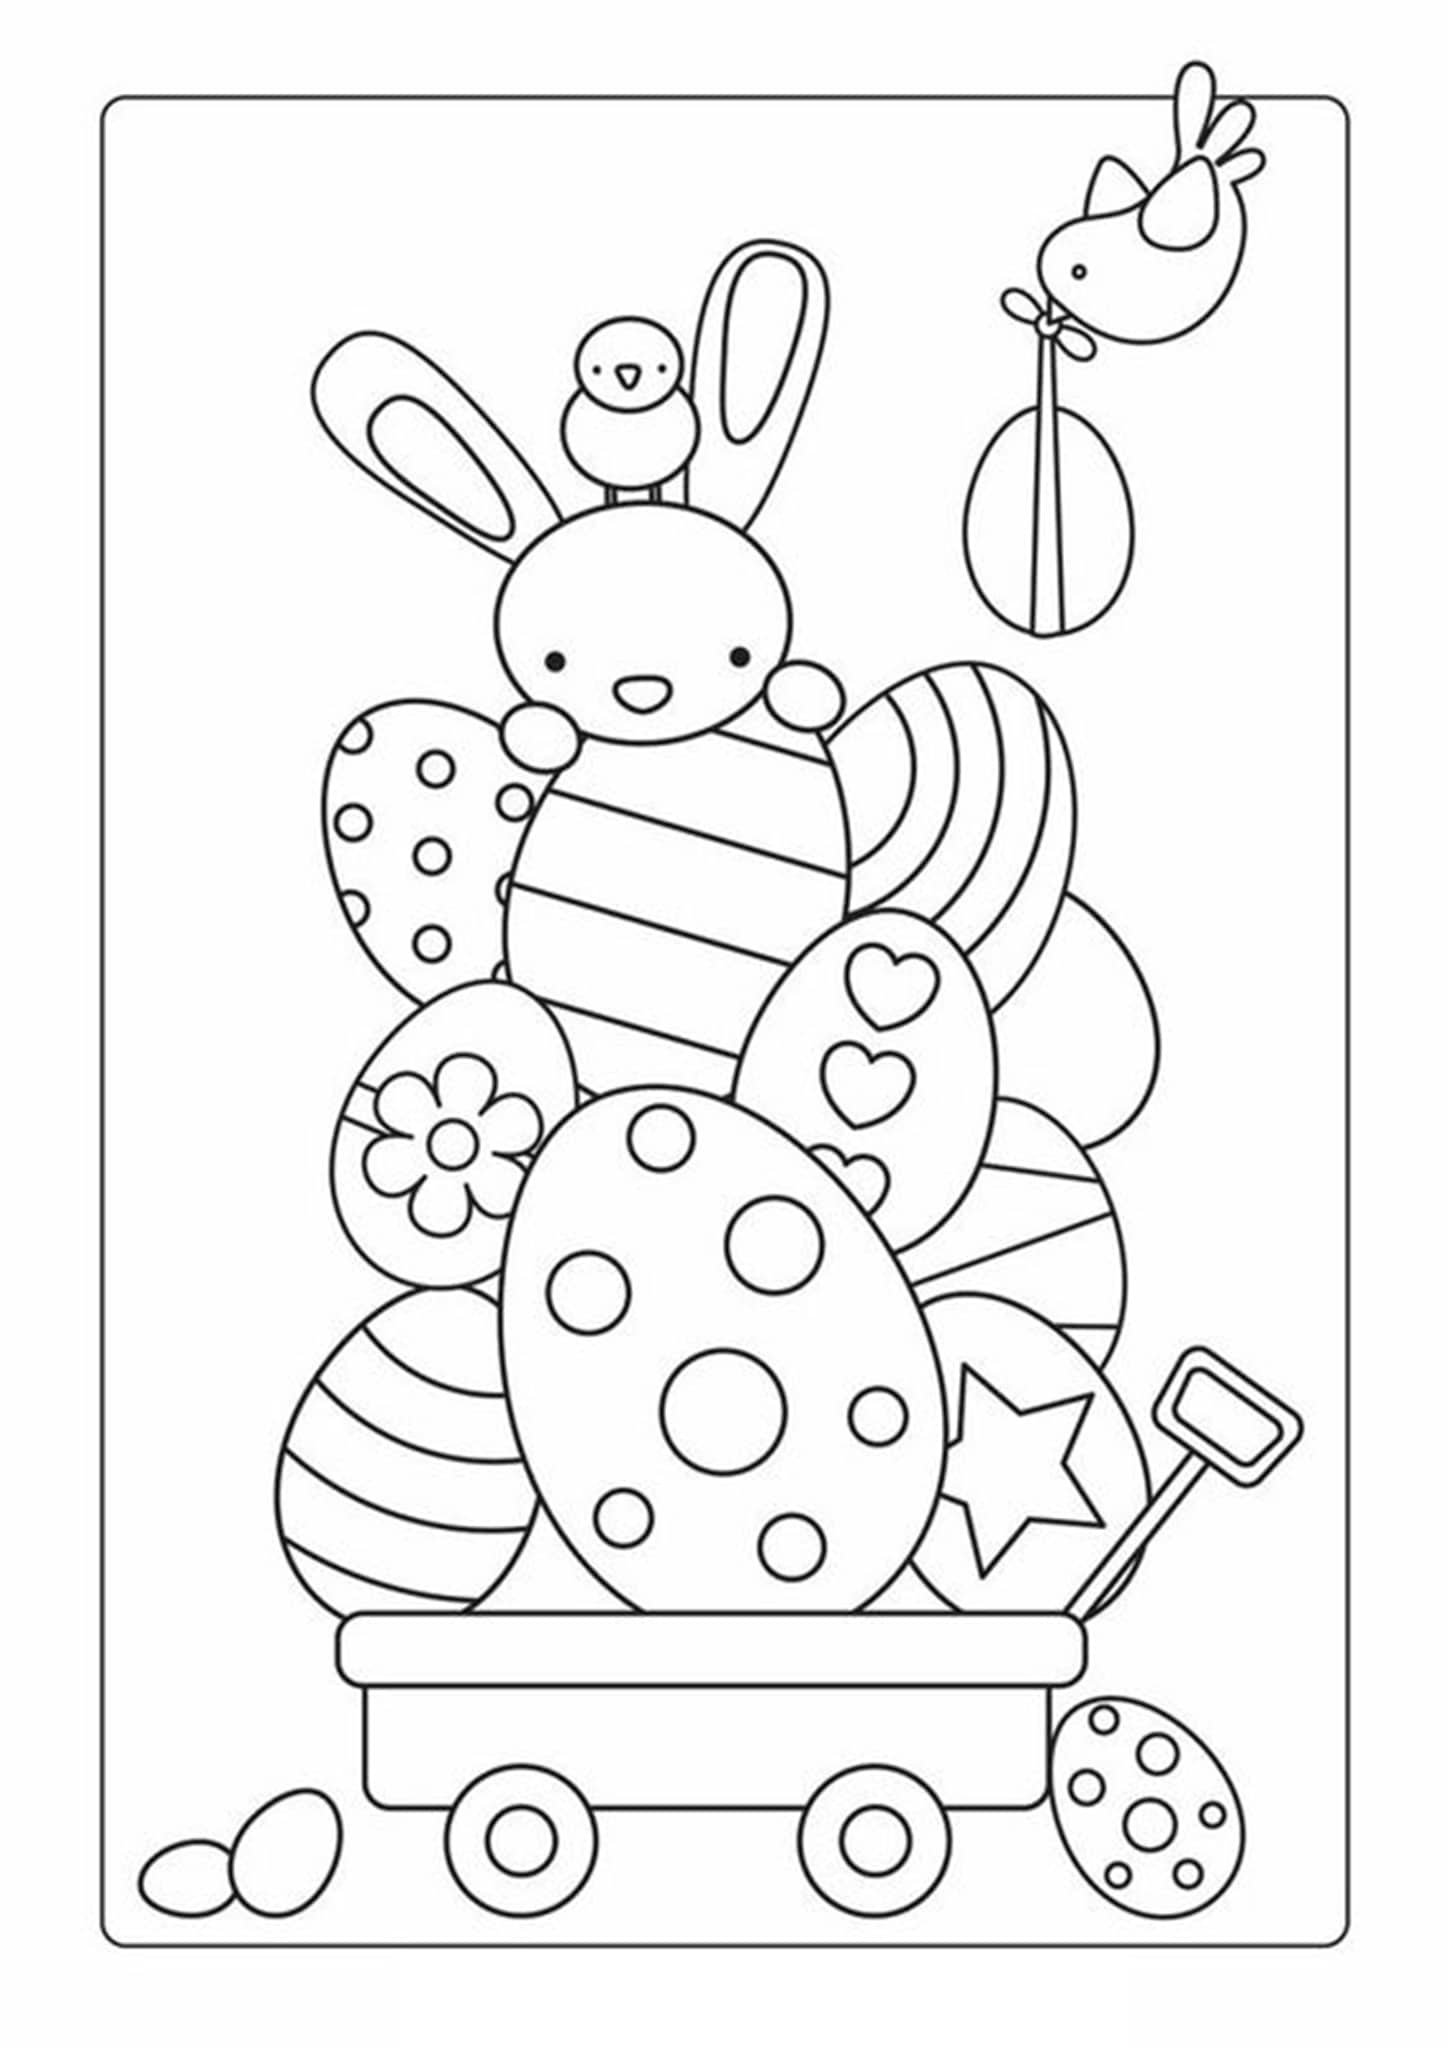 Free & Easy To Print Bunny Coloring Pages - Tulamama